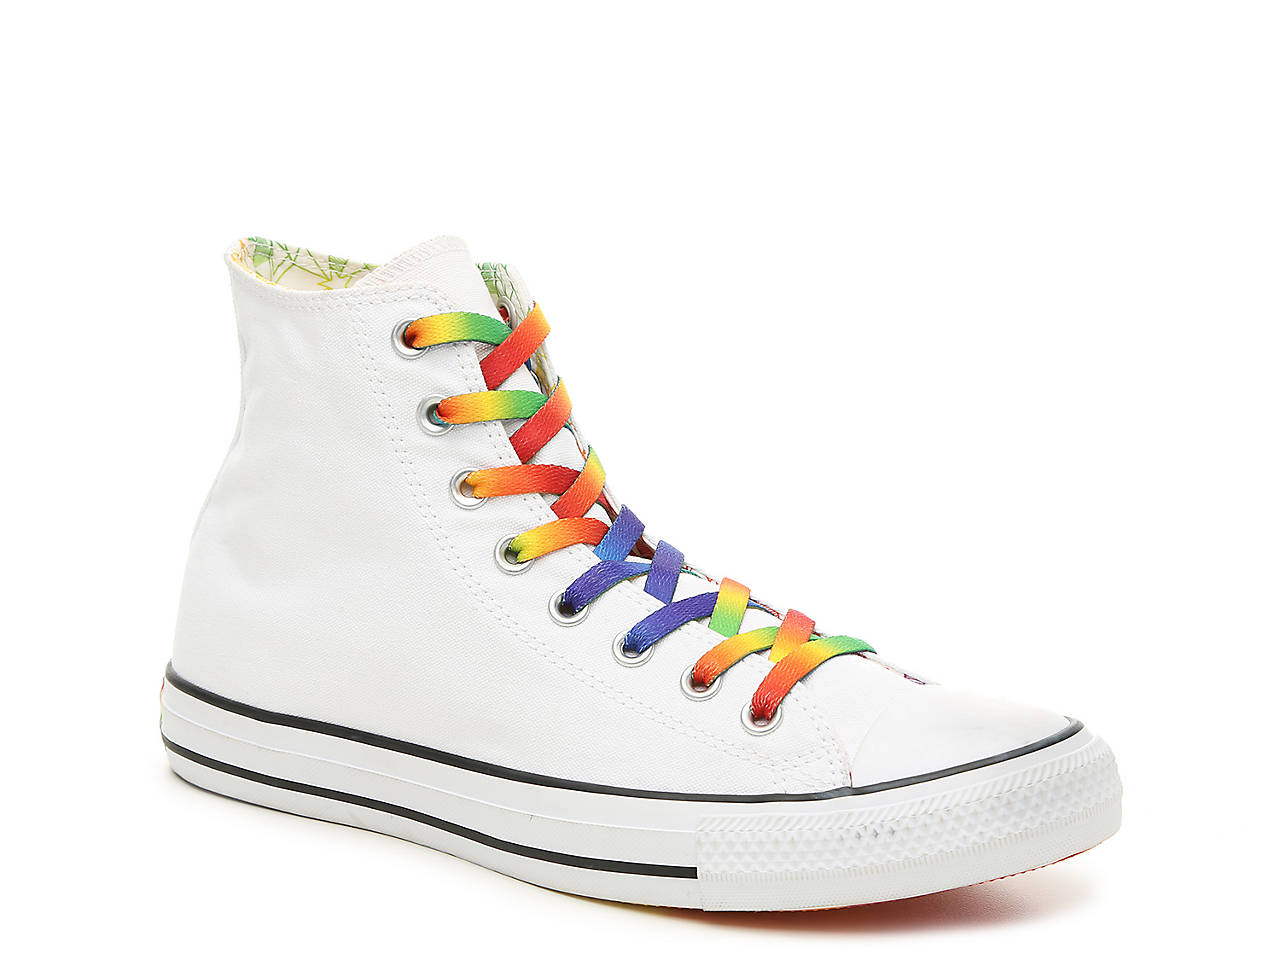 Chuck Taylor All Star Pride High-Top Sneaker - Men's